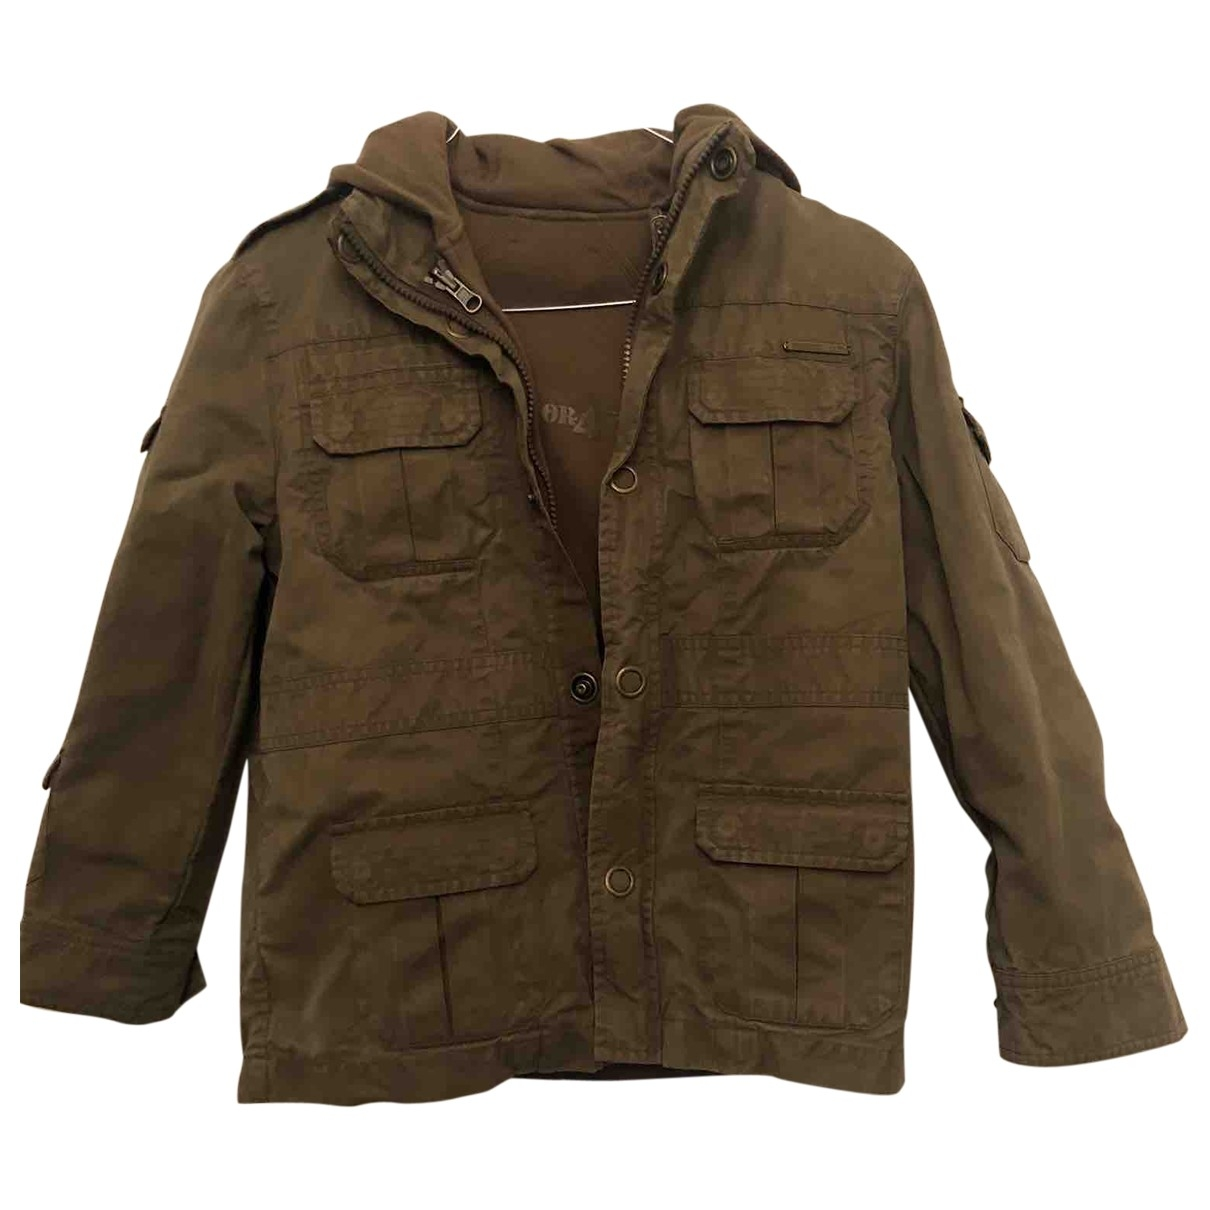 Dior \N Khaki Cotton jacket & coat for Kids 8 years - up to 128cm FR